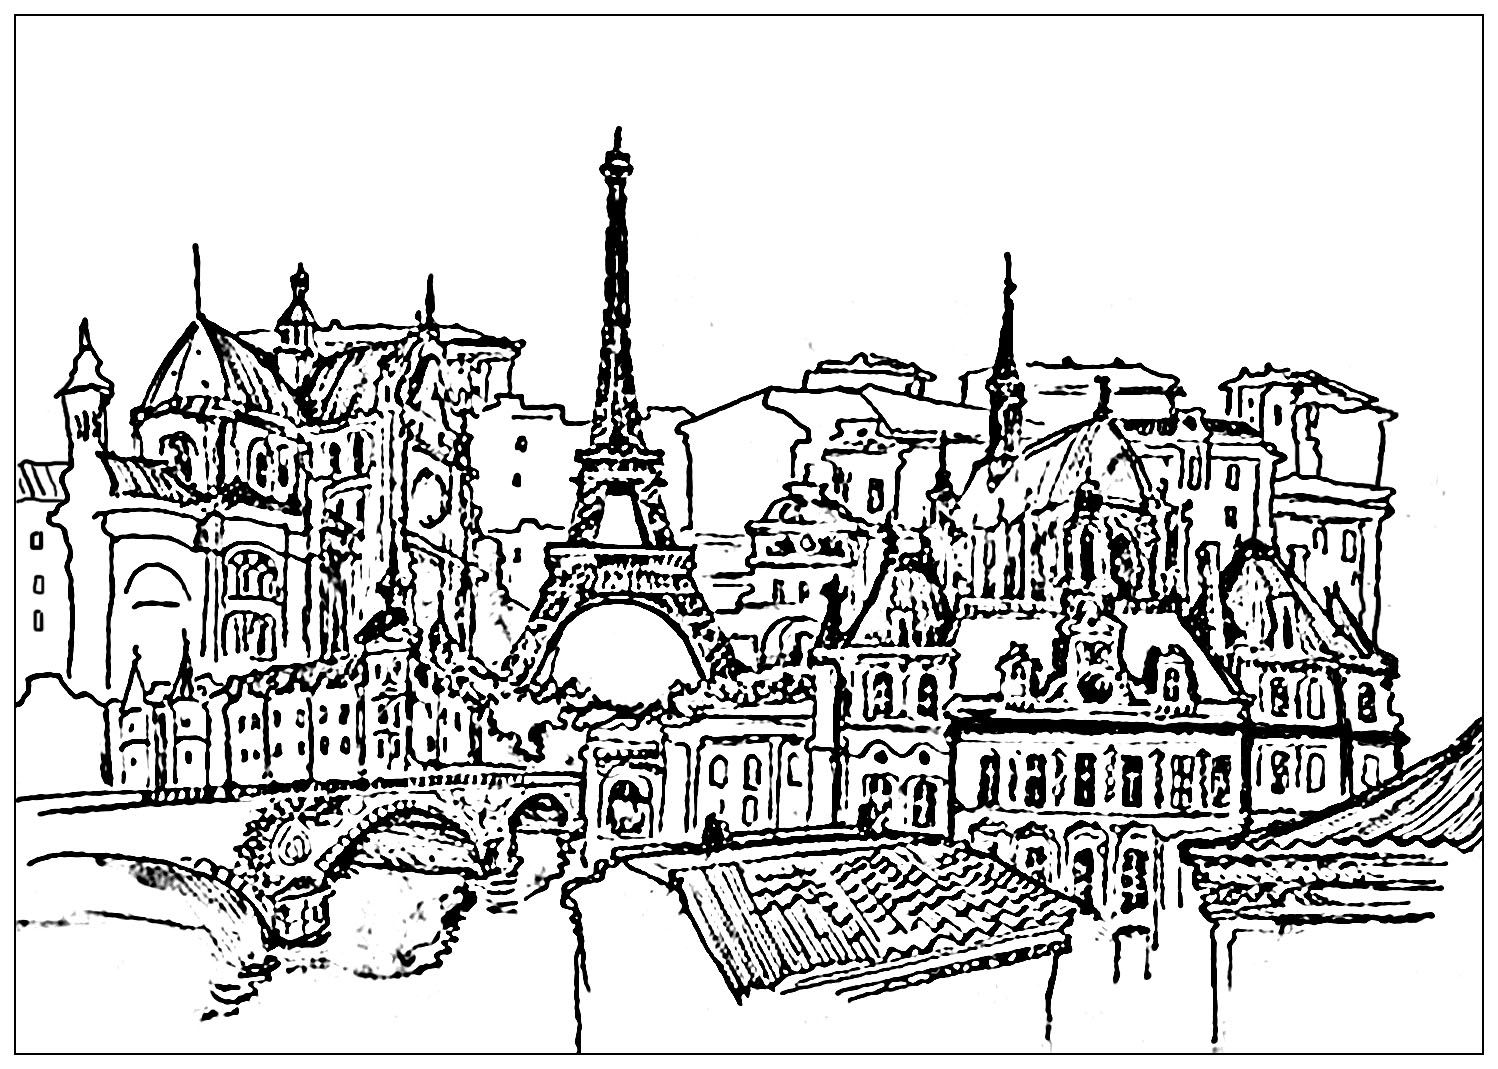 A very complex coloring page of ParisFrom the gallery